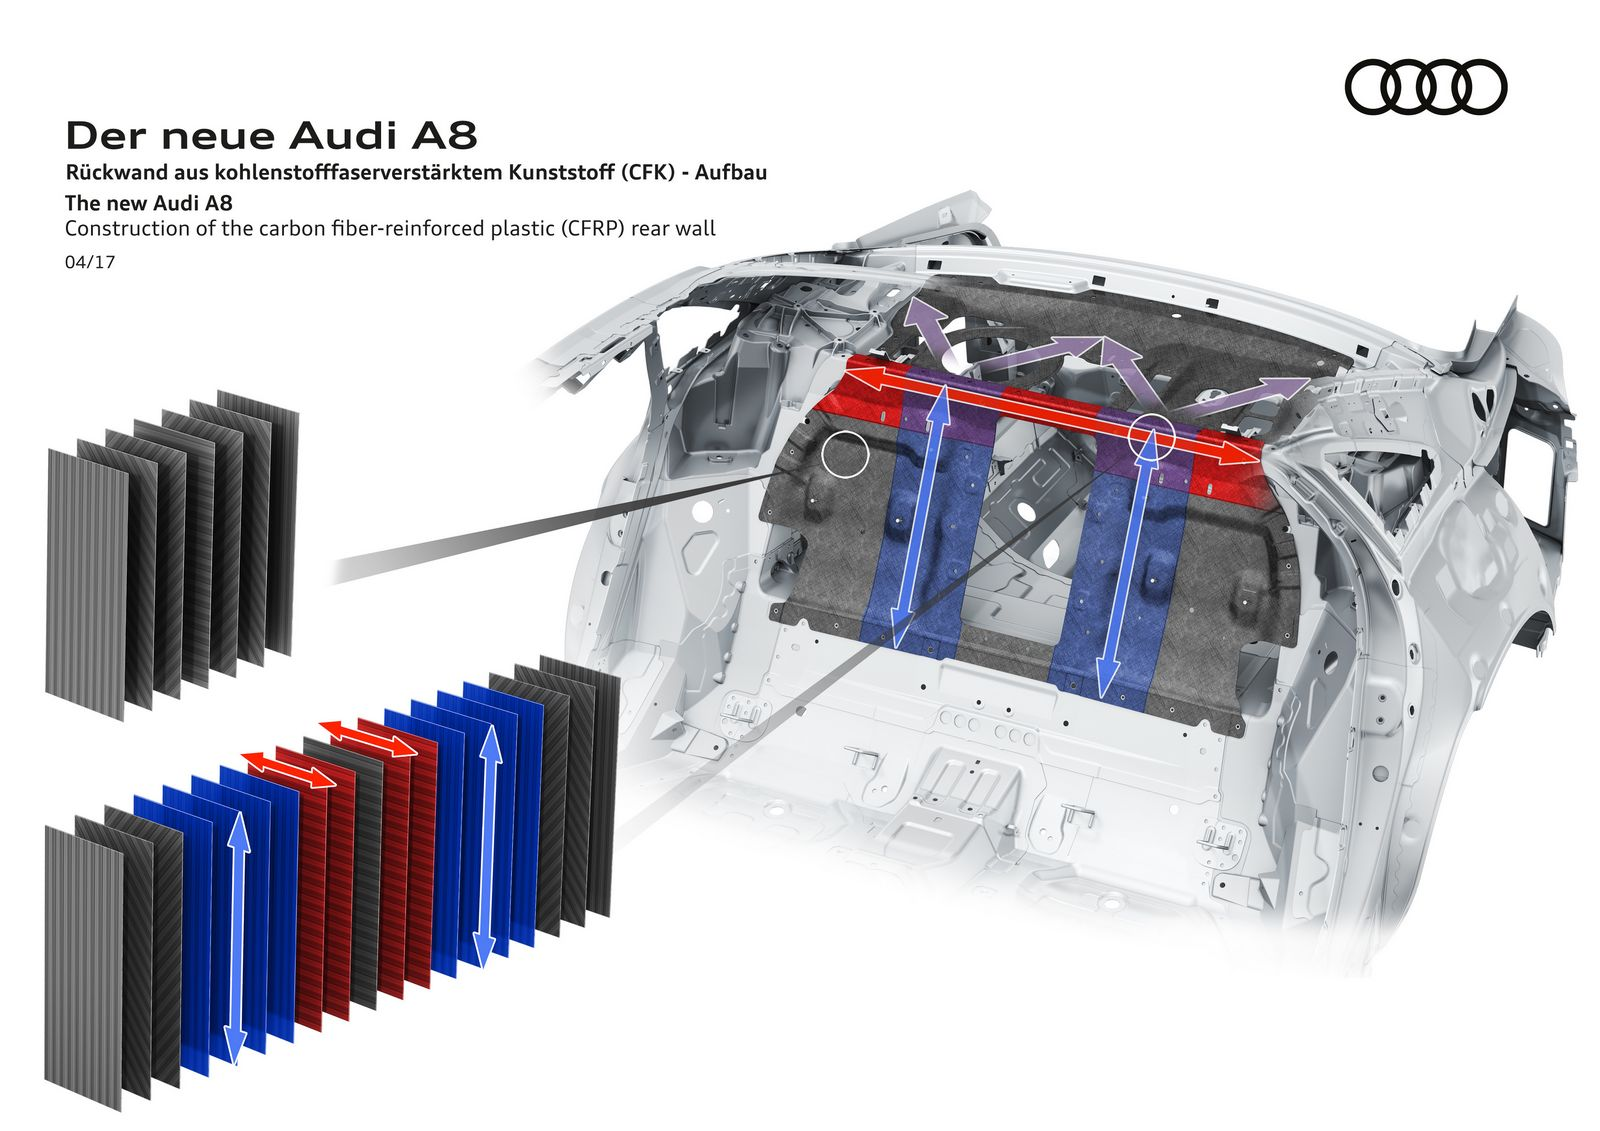 Construction of the carbon fiber-reinforced plastic (CFRP) rear wall